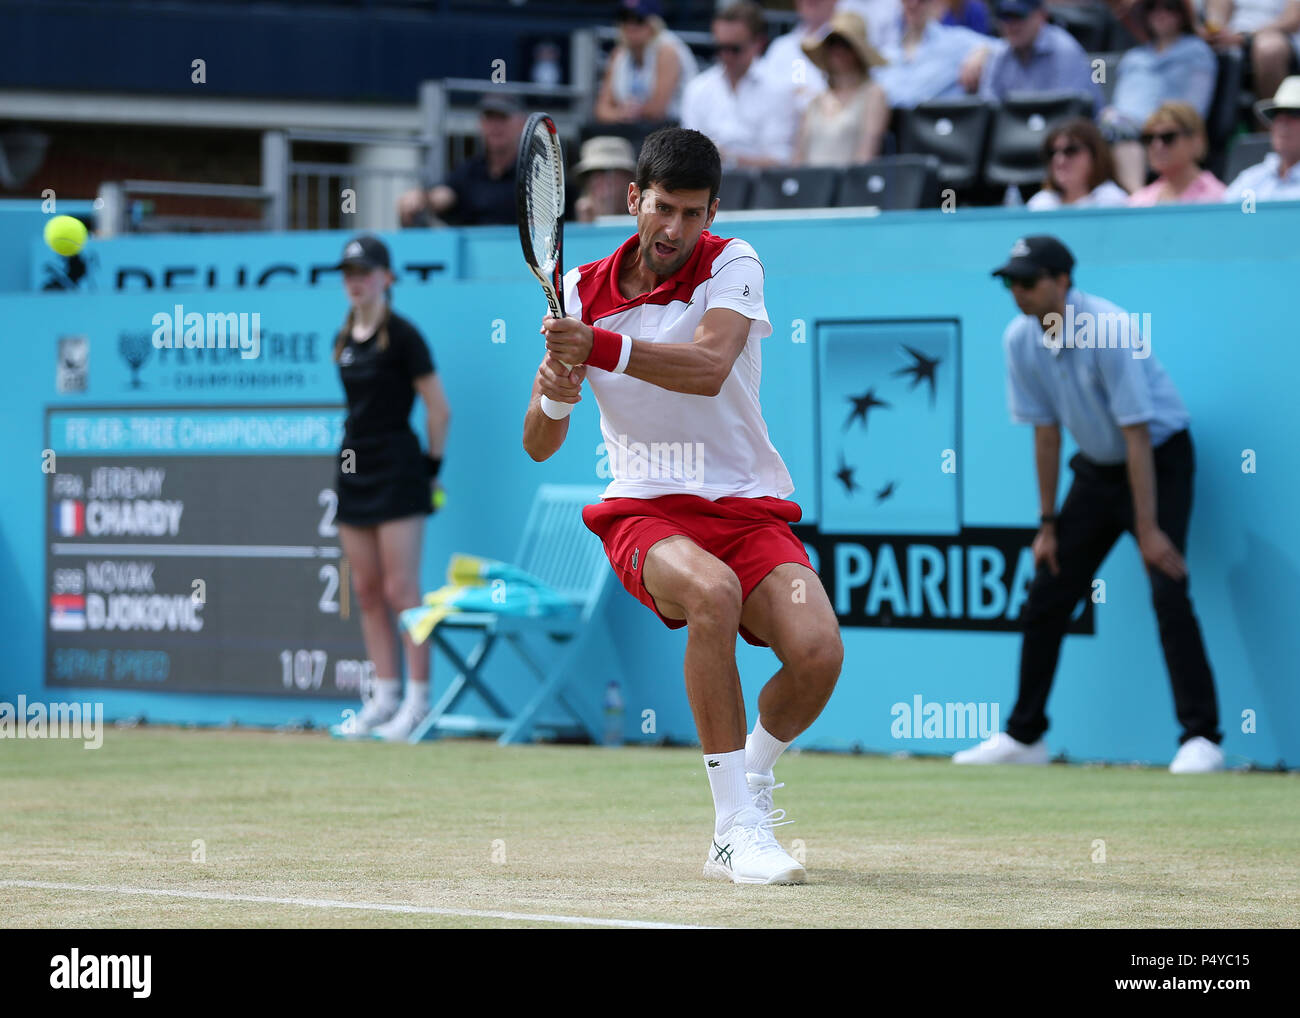 The Fever Tree Tennis Championships  Novak Djokovic (SRB) with a backhand  shot Credit  Action Plus Sports Alamy Live News 7e7aa8b68d295